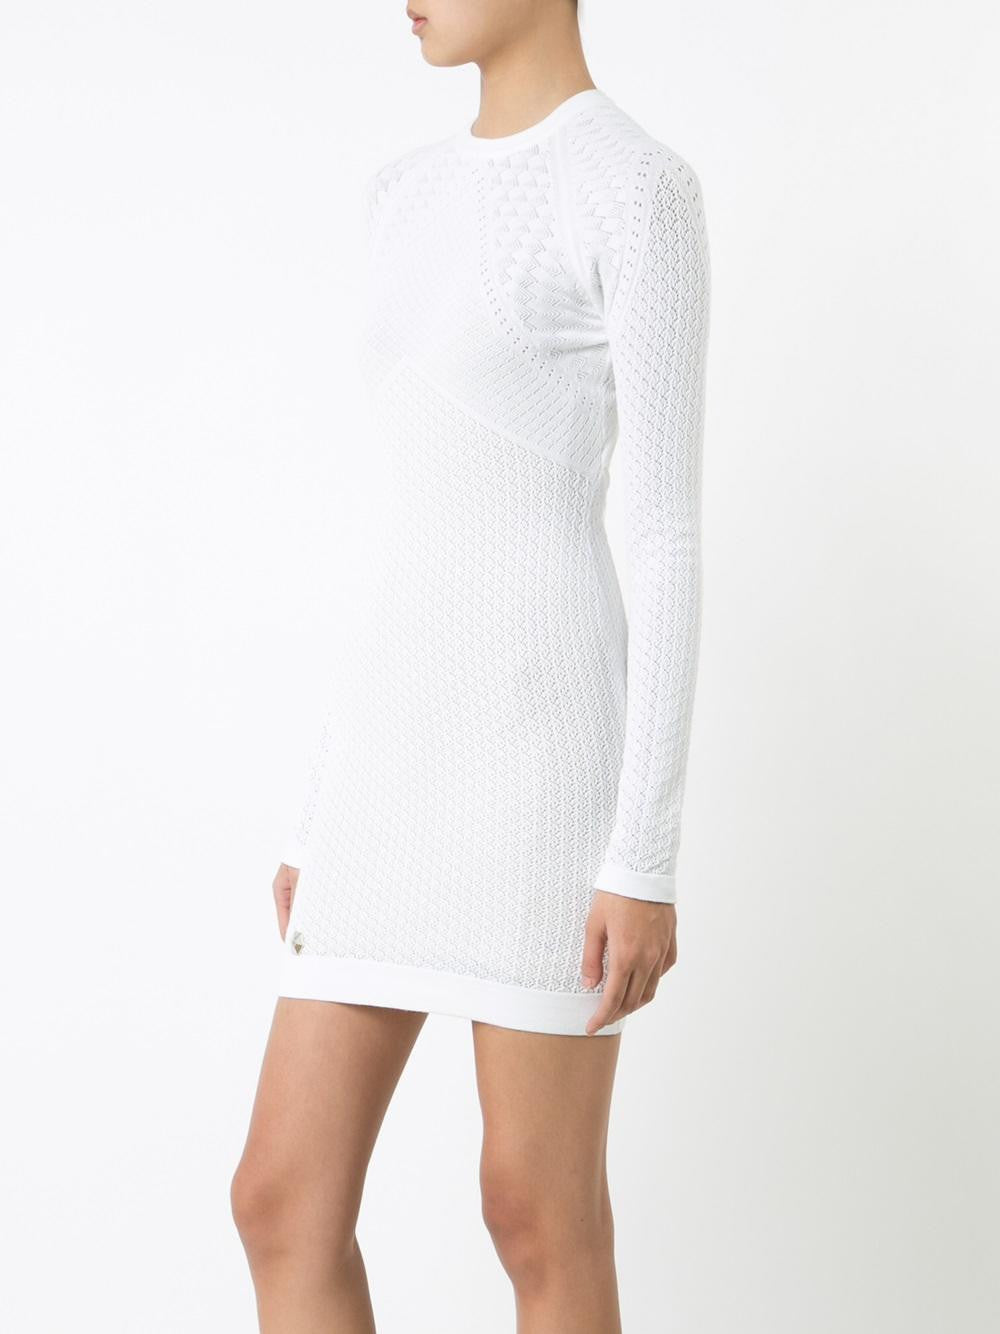 Knit Lonicera Dress | LONICERA WKG_0011 PKN002N